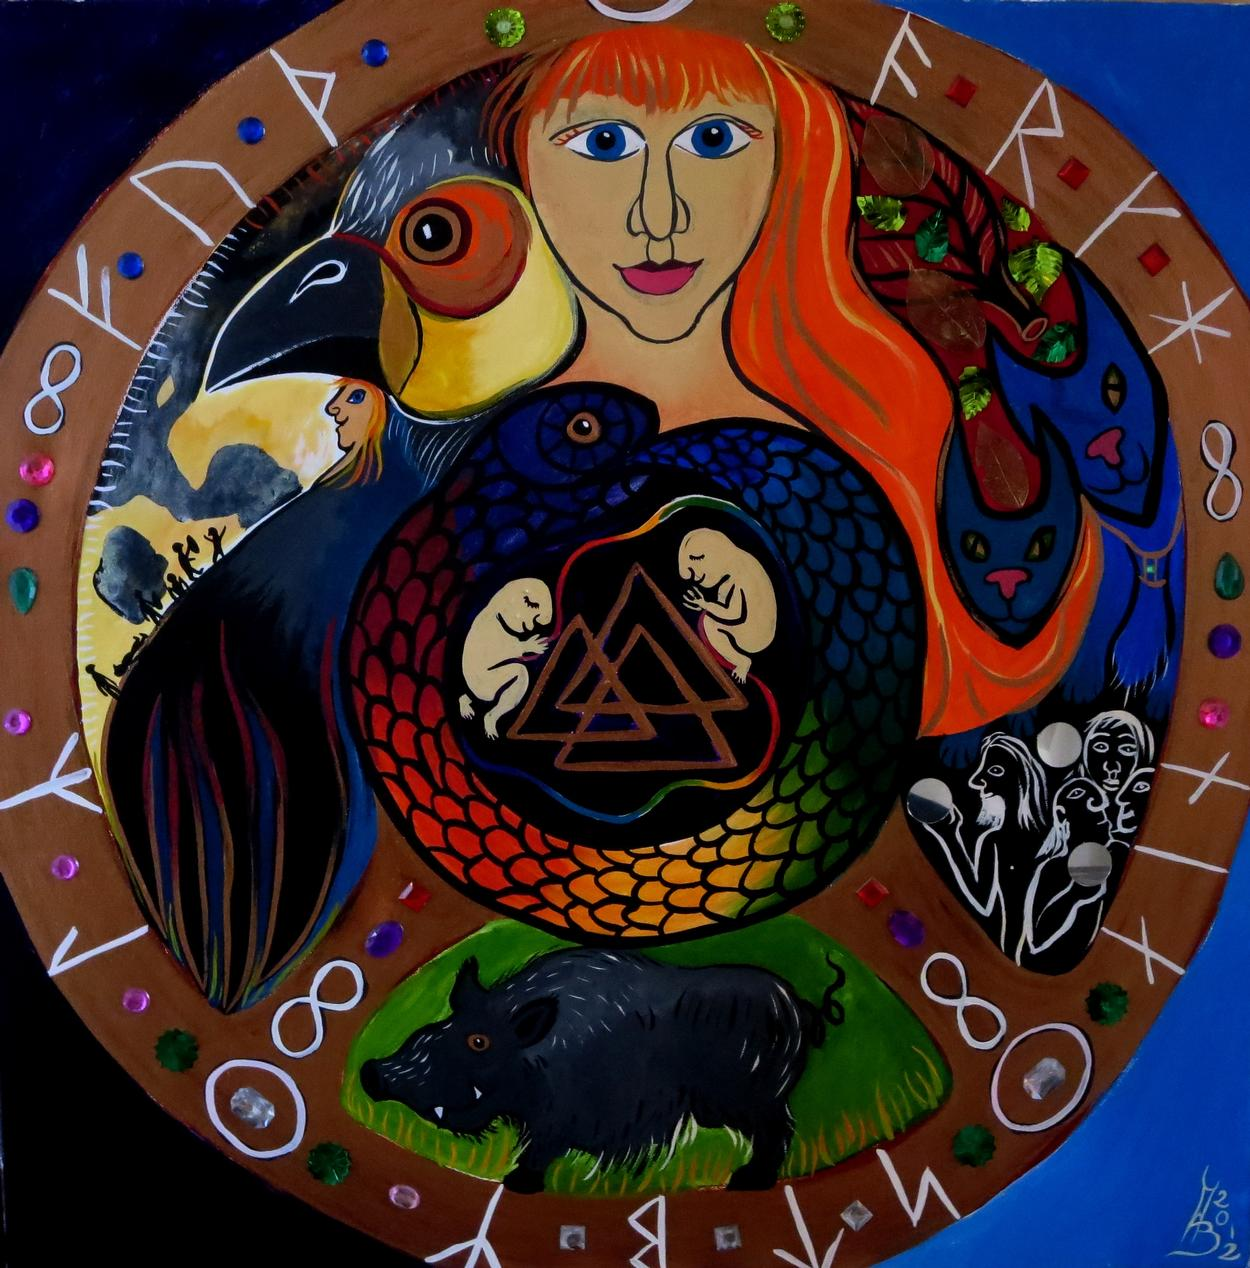 Shamanic teacher, painter and author in the UK and the world